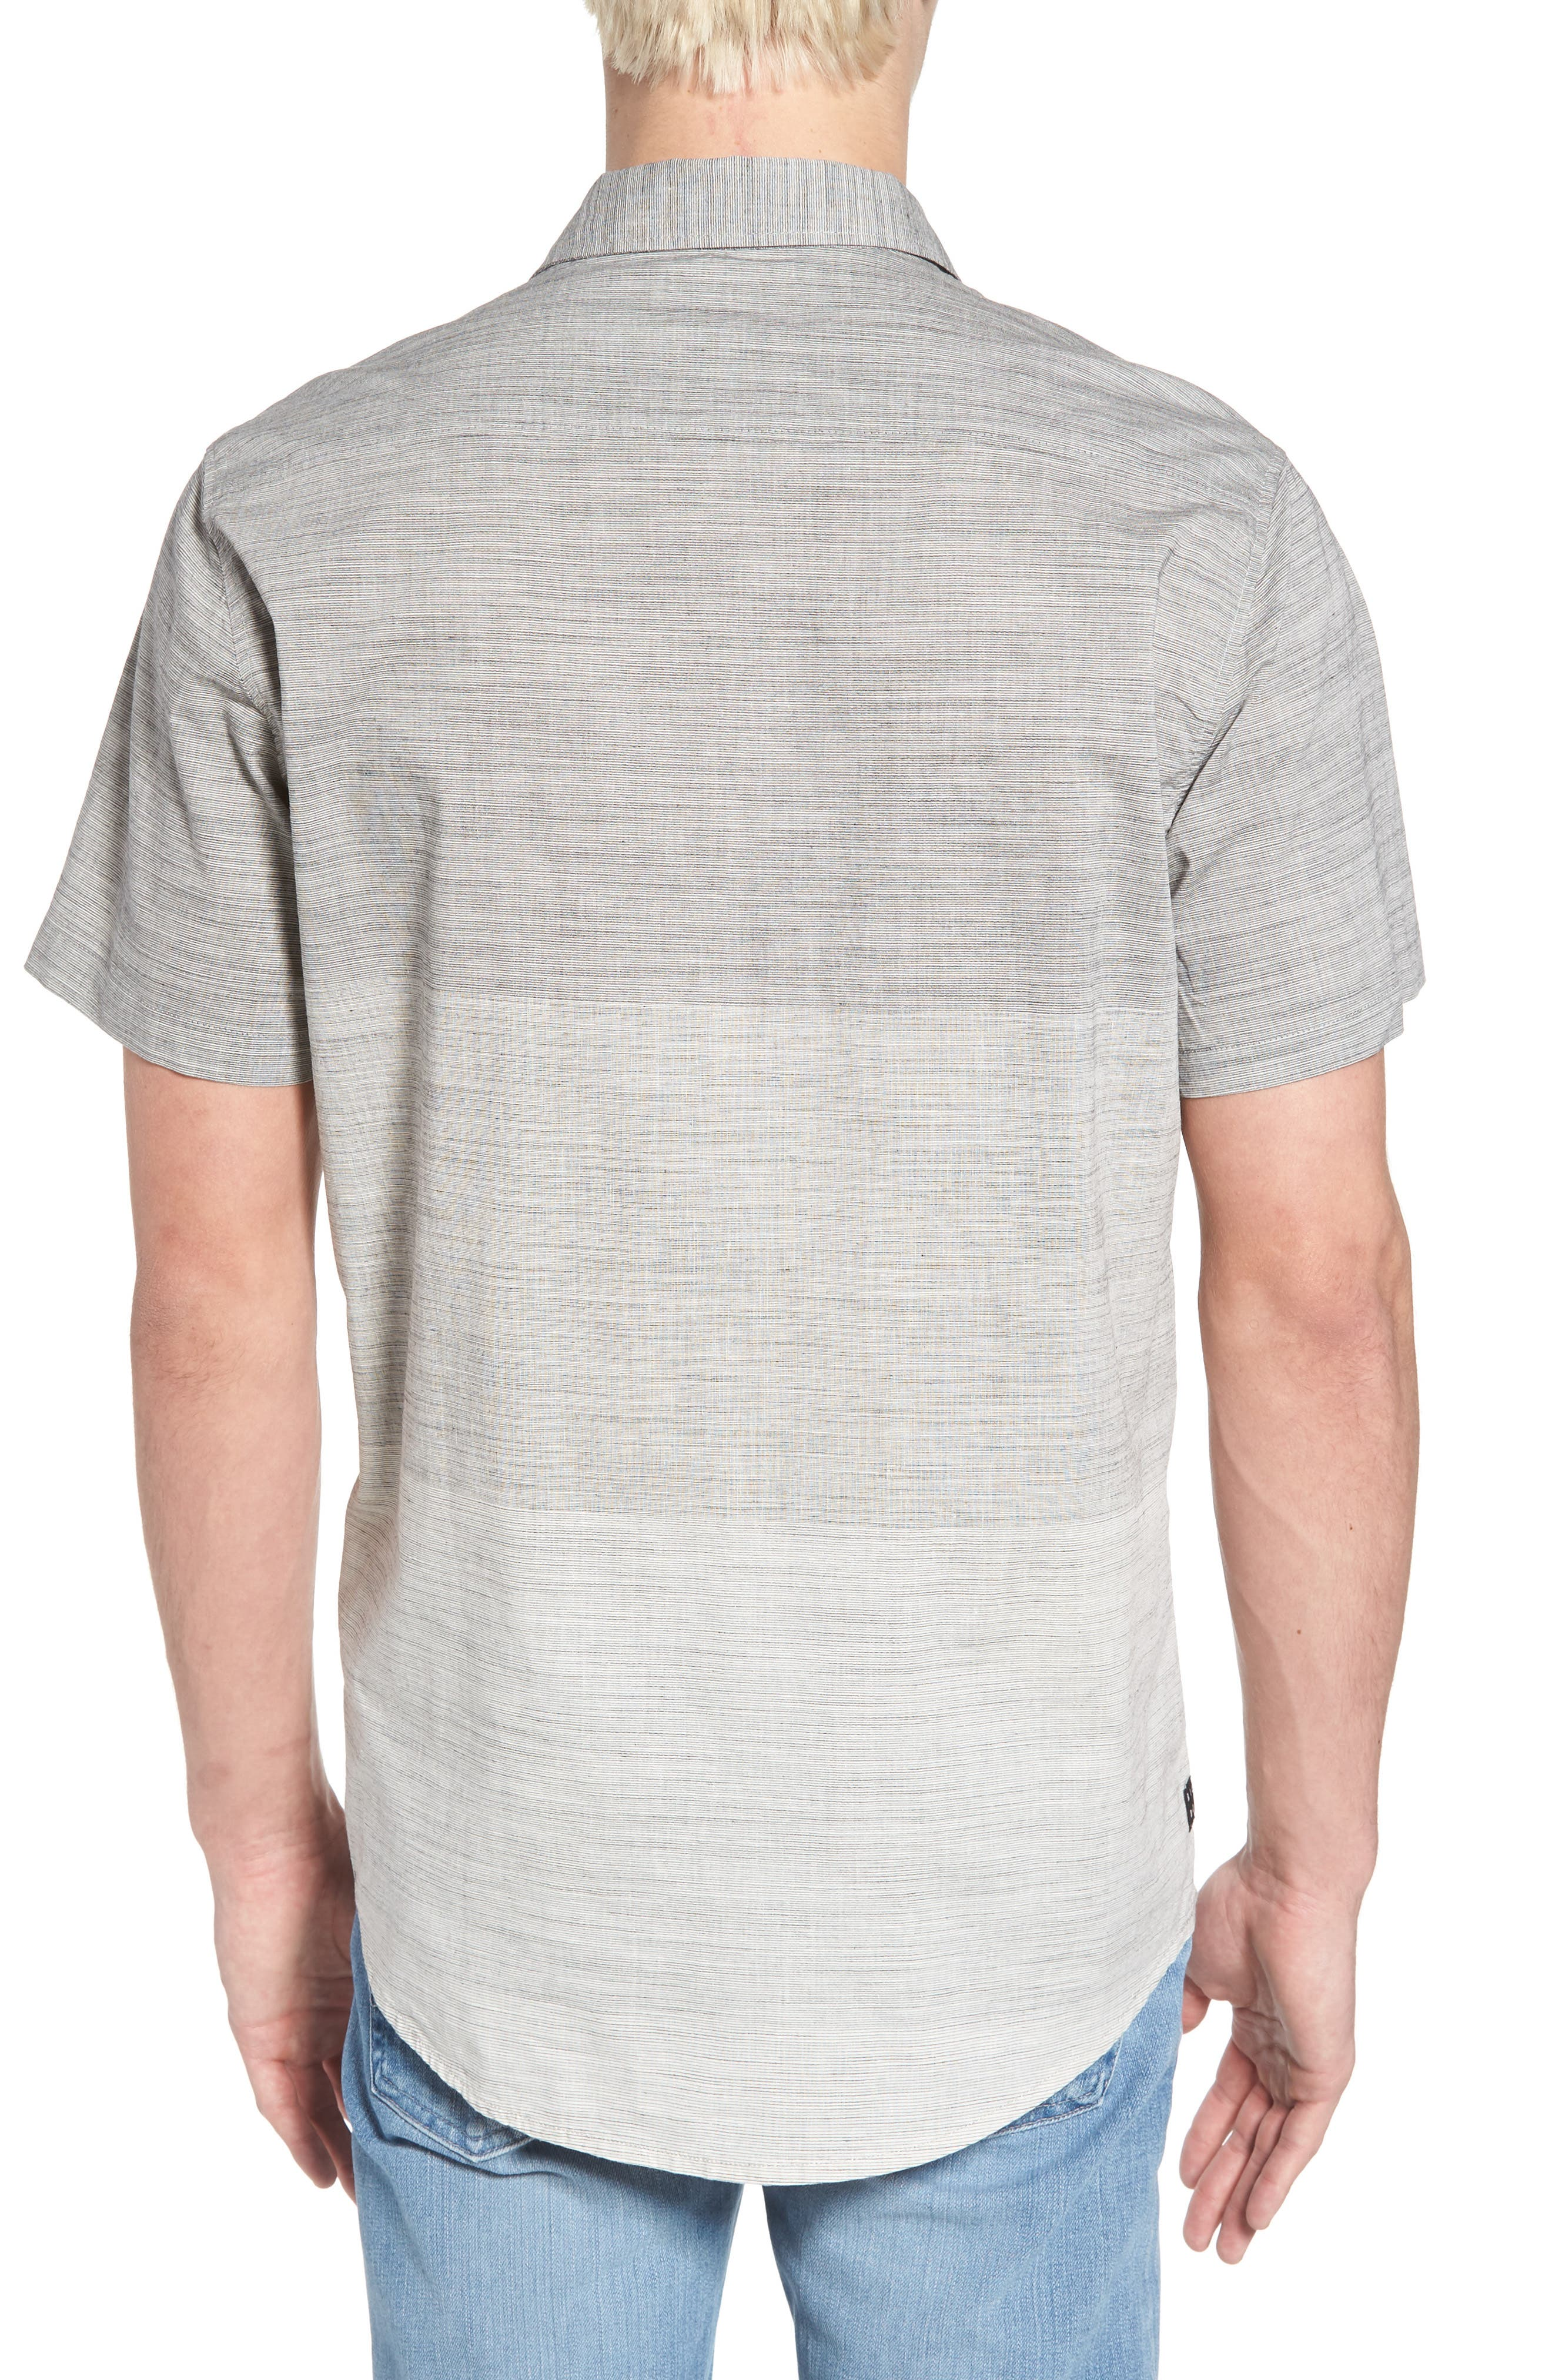 Faderade Short Sleeve Shirt,                             Alternate thumbnail 2, color,                             020